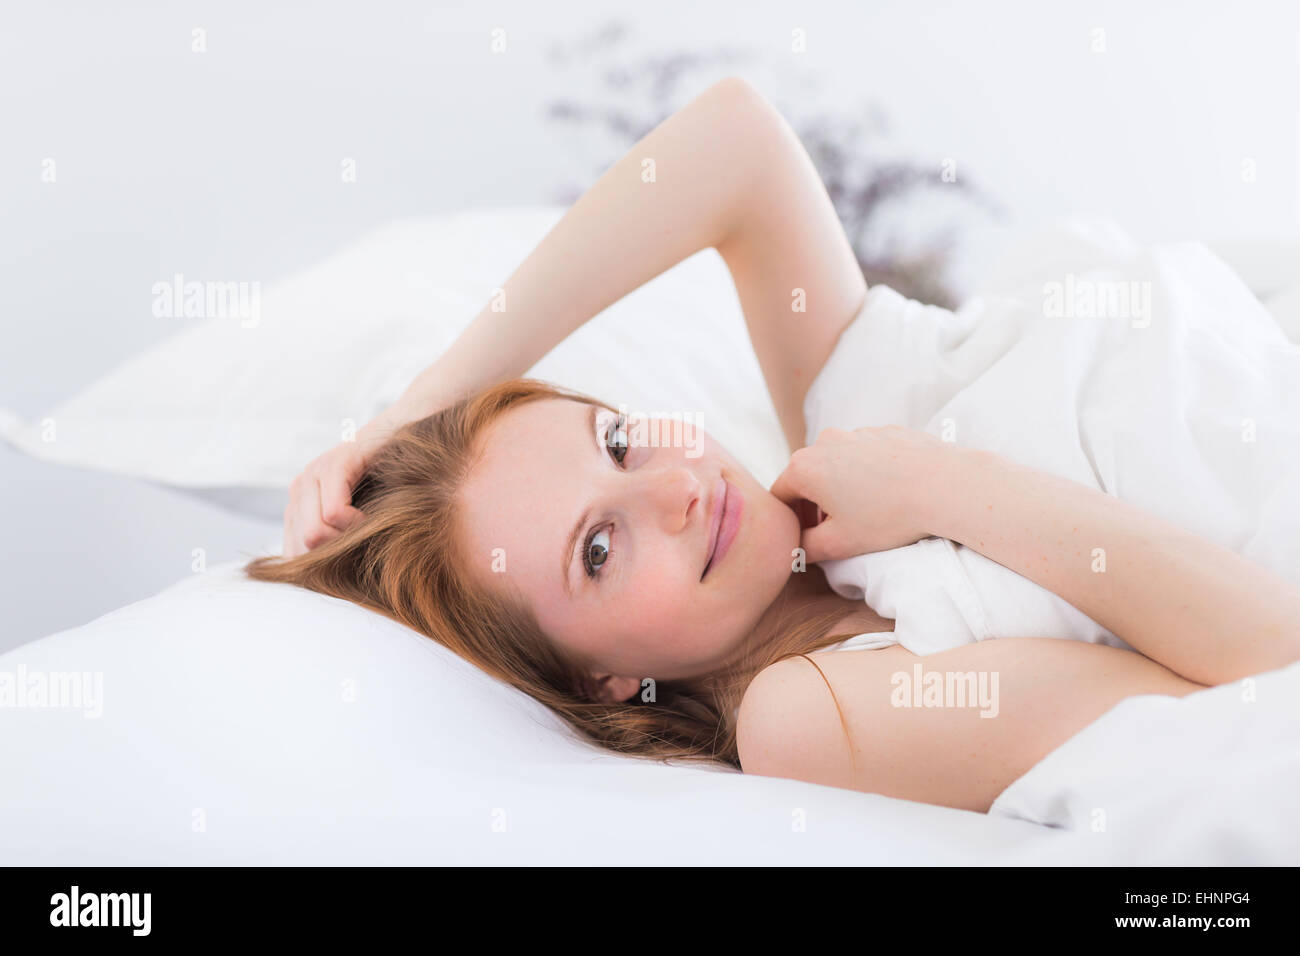 Woman laying in bed, tête sur l'oreiller, smiling at camera Photo Stock